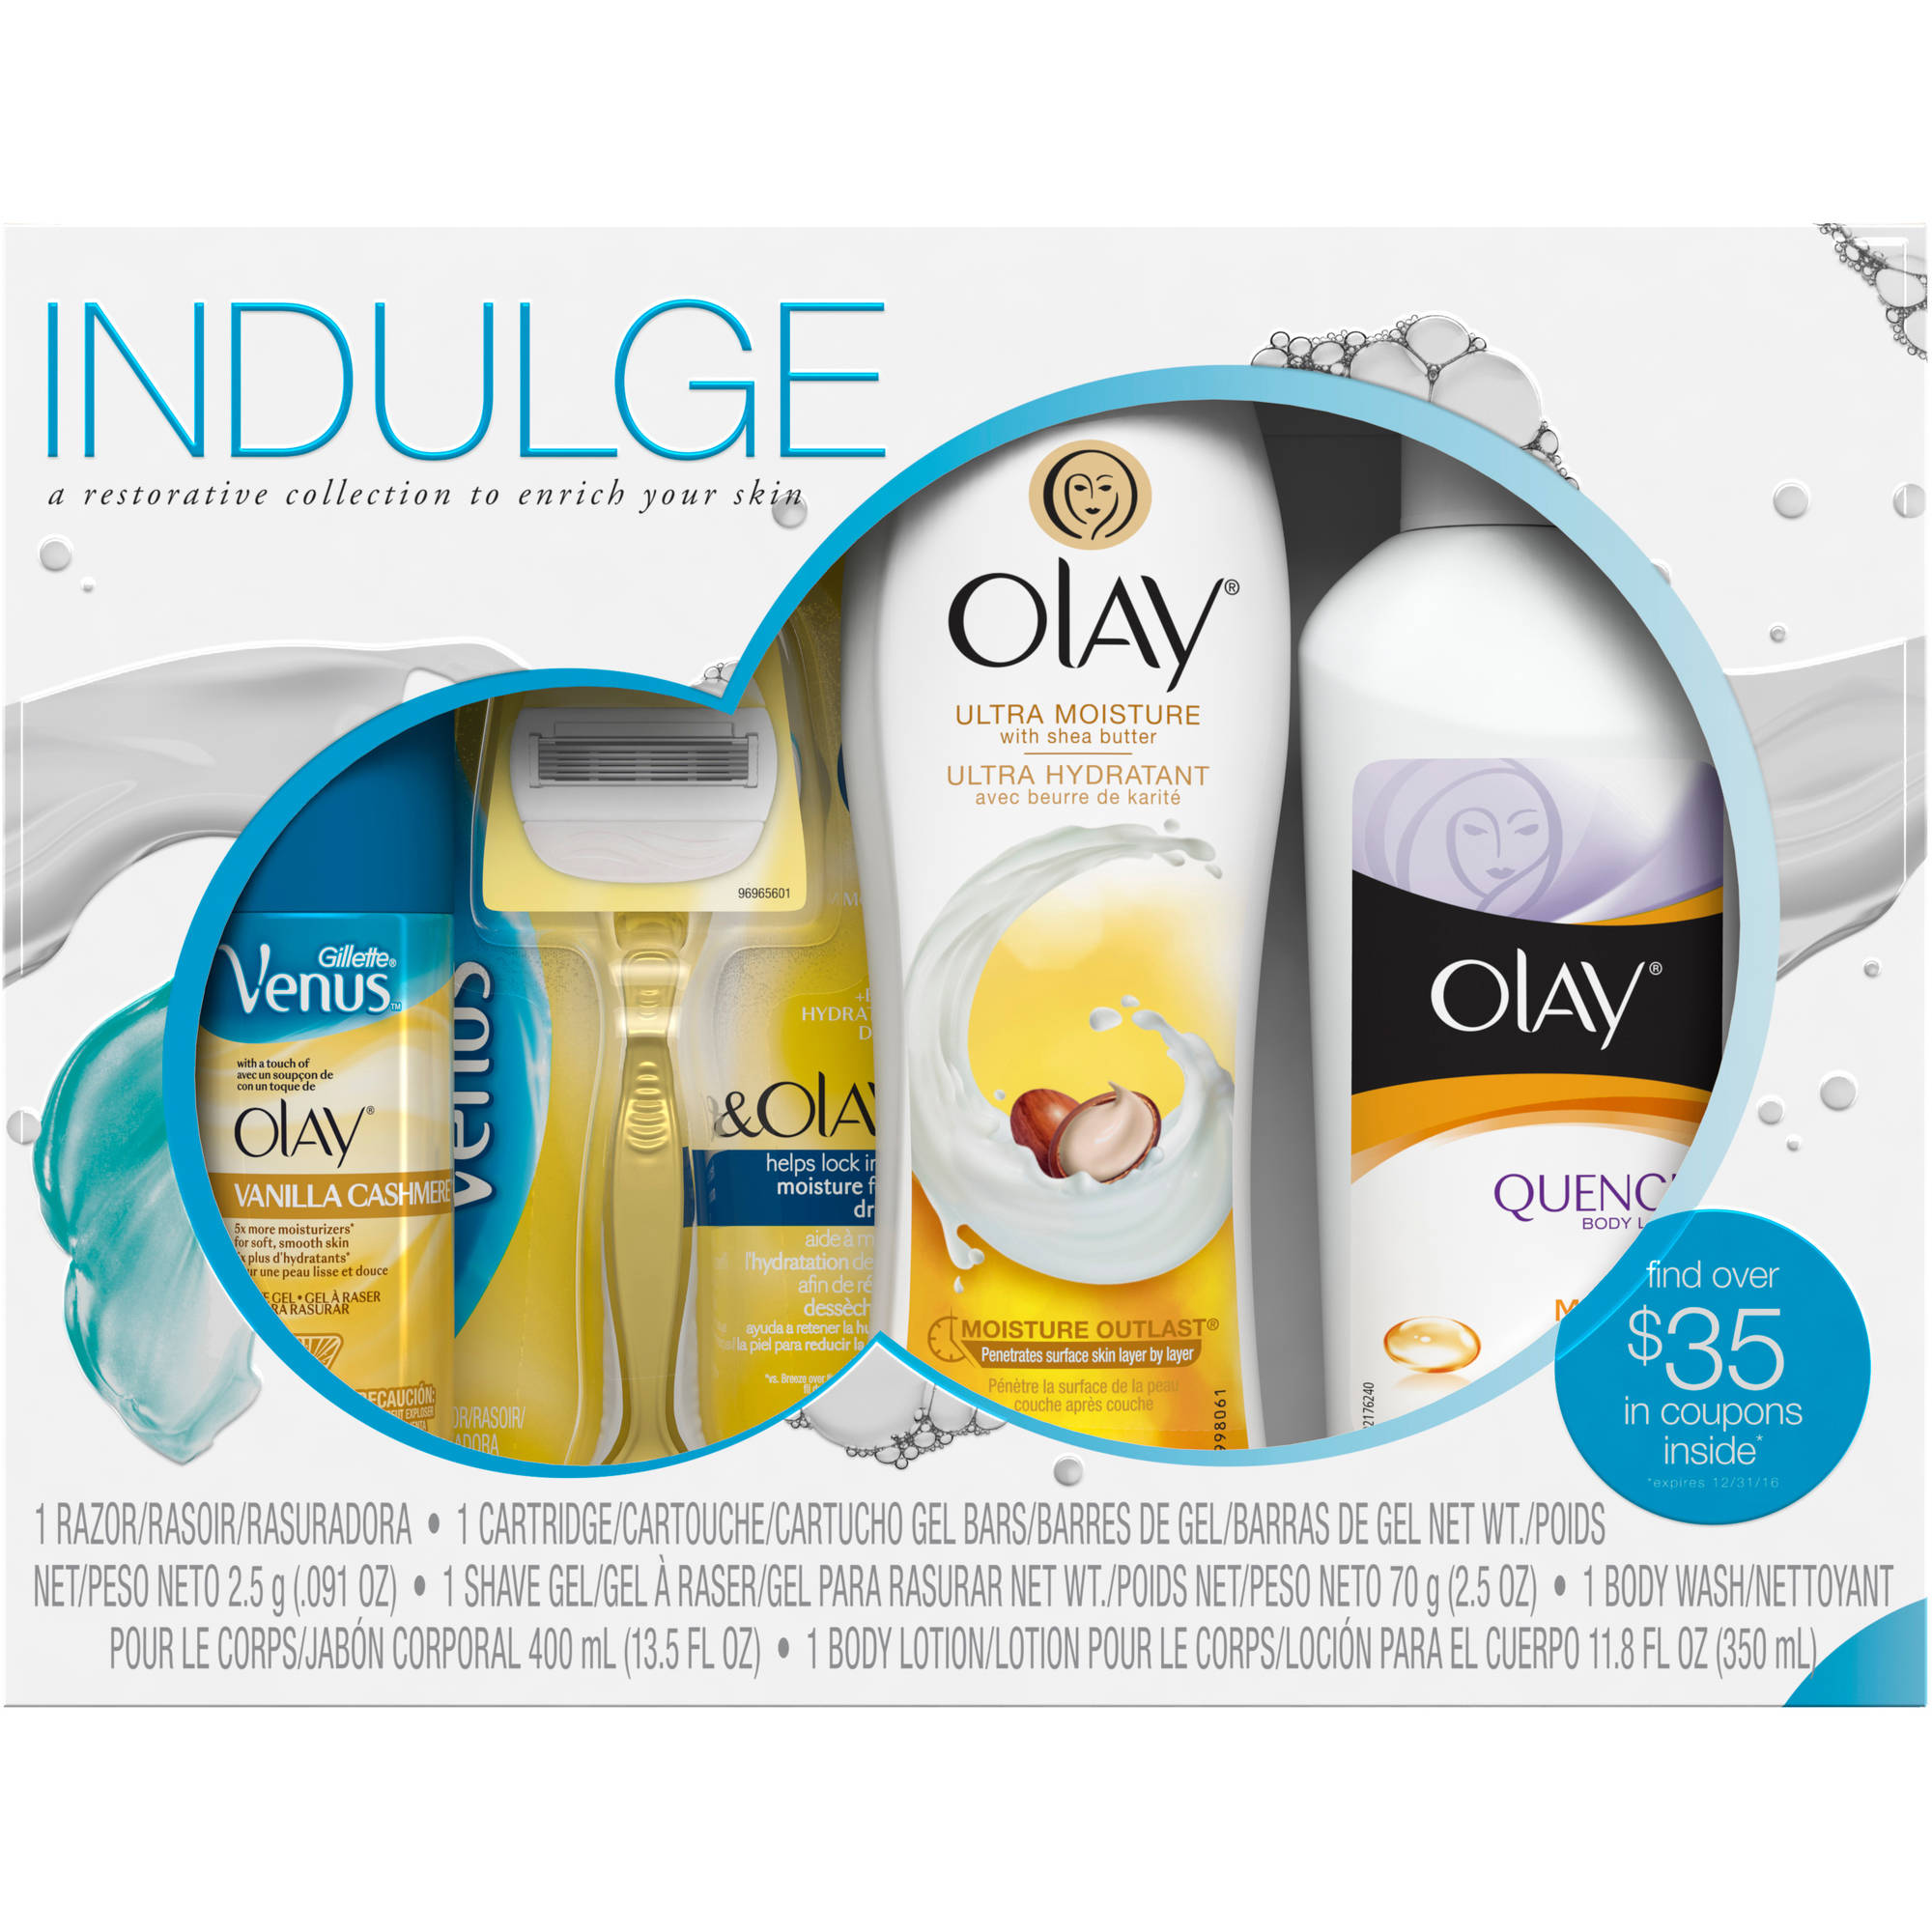 Olay Indulge Shower Collection with Venus Gift Set, 4 pc